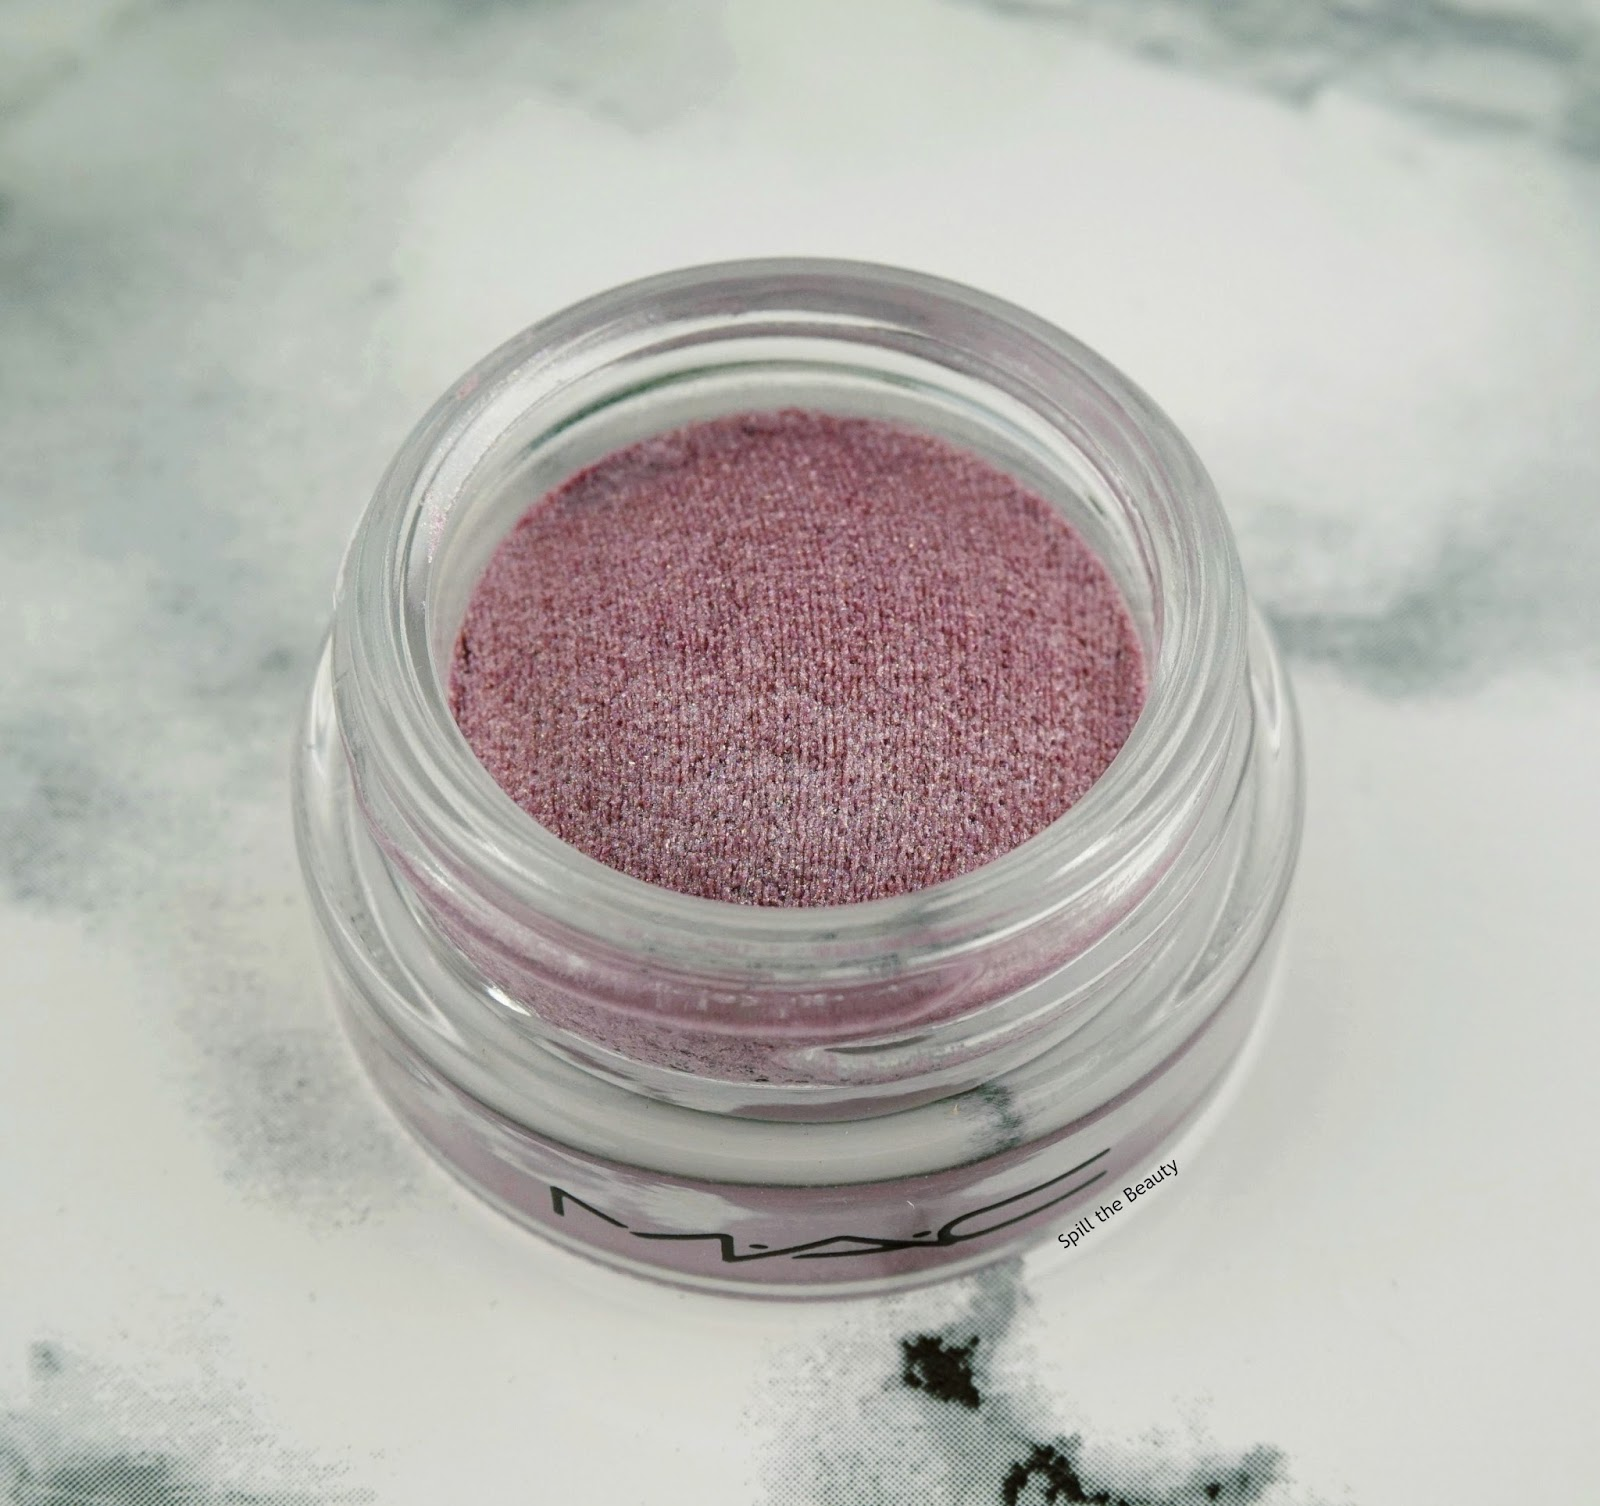 MAC Soft Serve Eye Shadow in Girls Girls swatch review